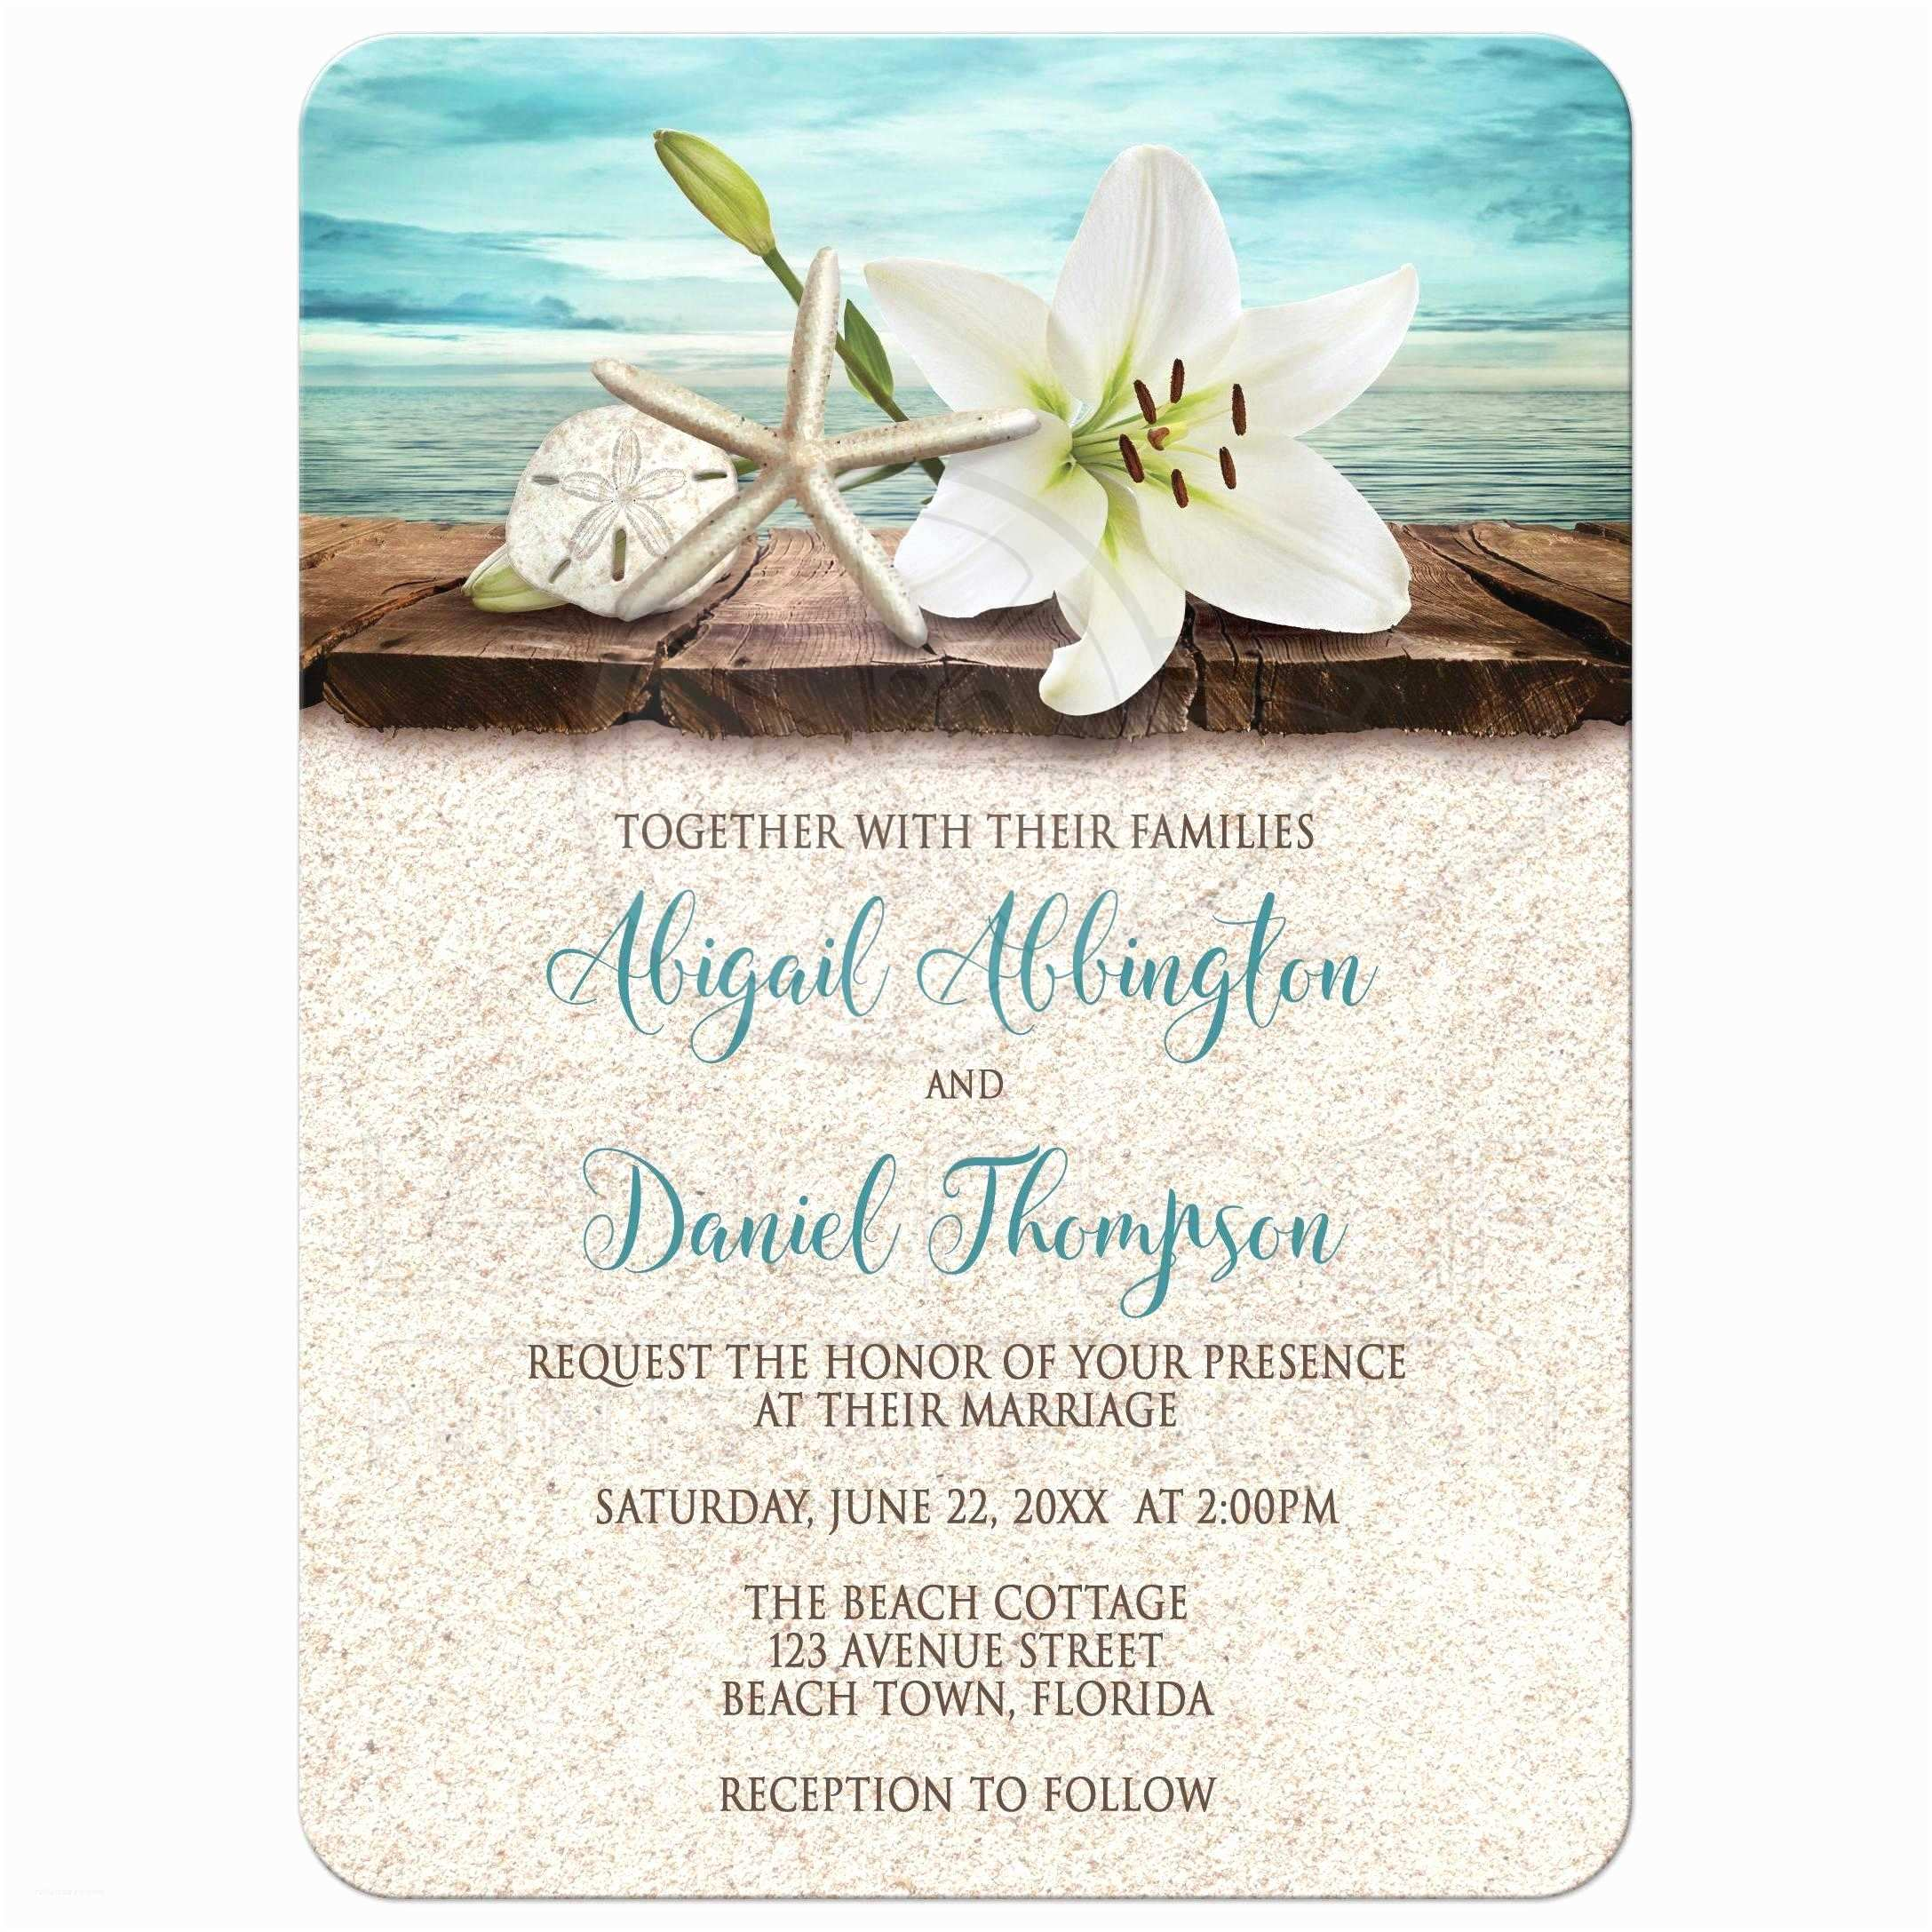 Beach Wedding Invitations Online Wedding Invitations Beach Lily Seashells and Sand